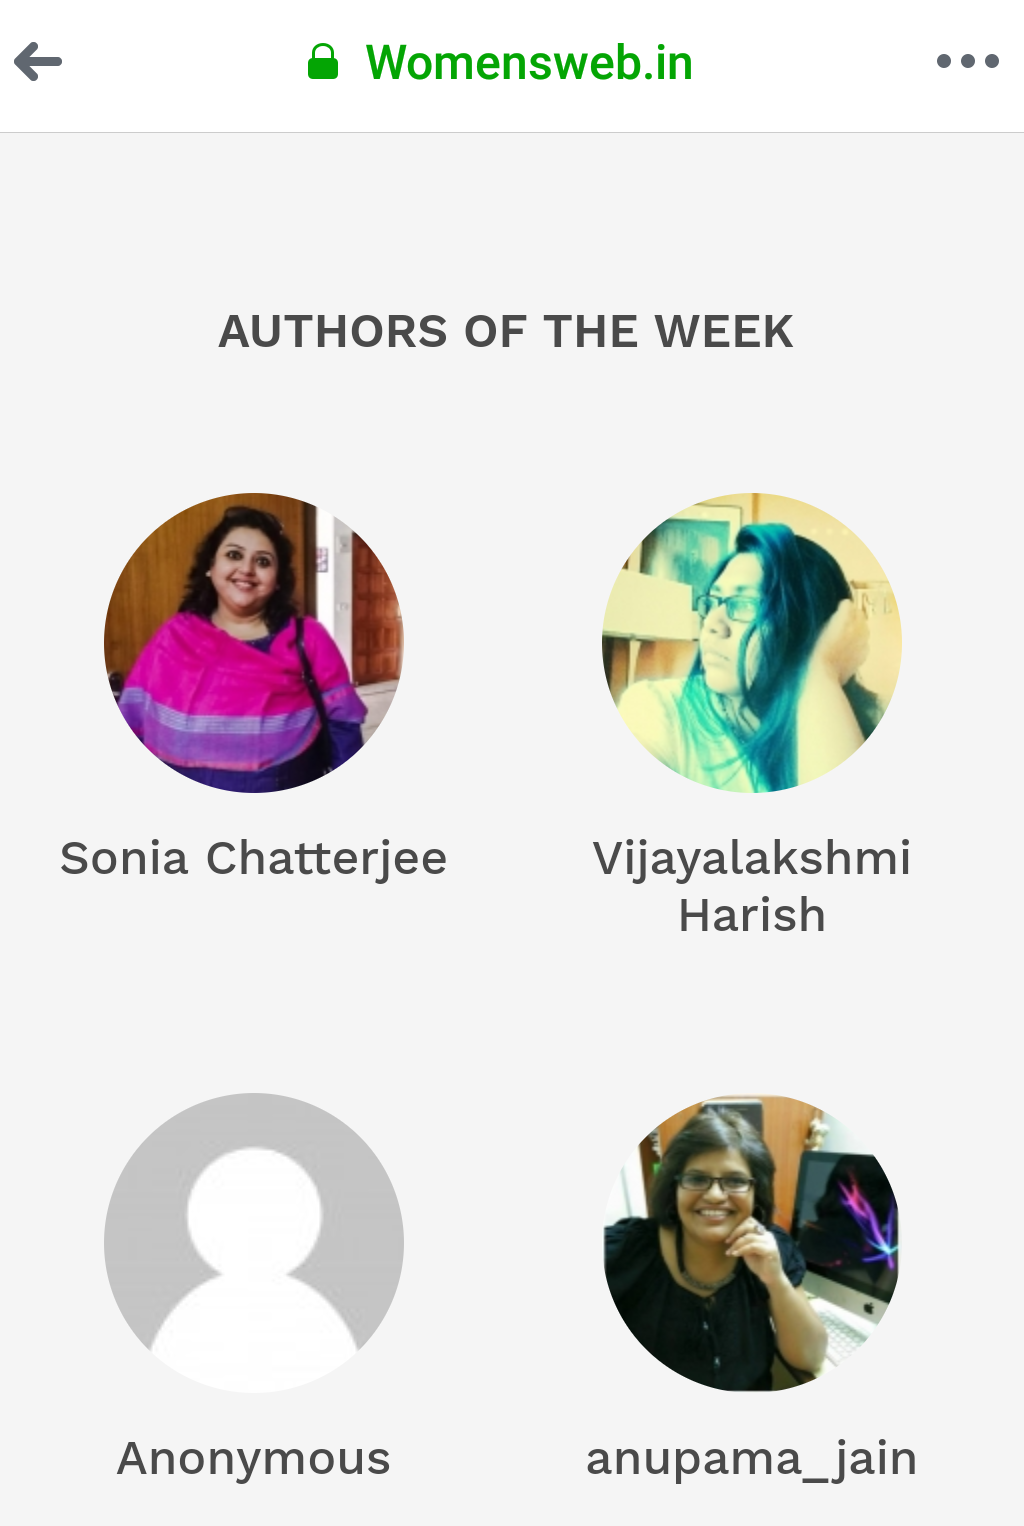 Author of the week @ womensweb